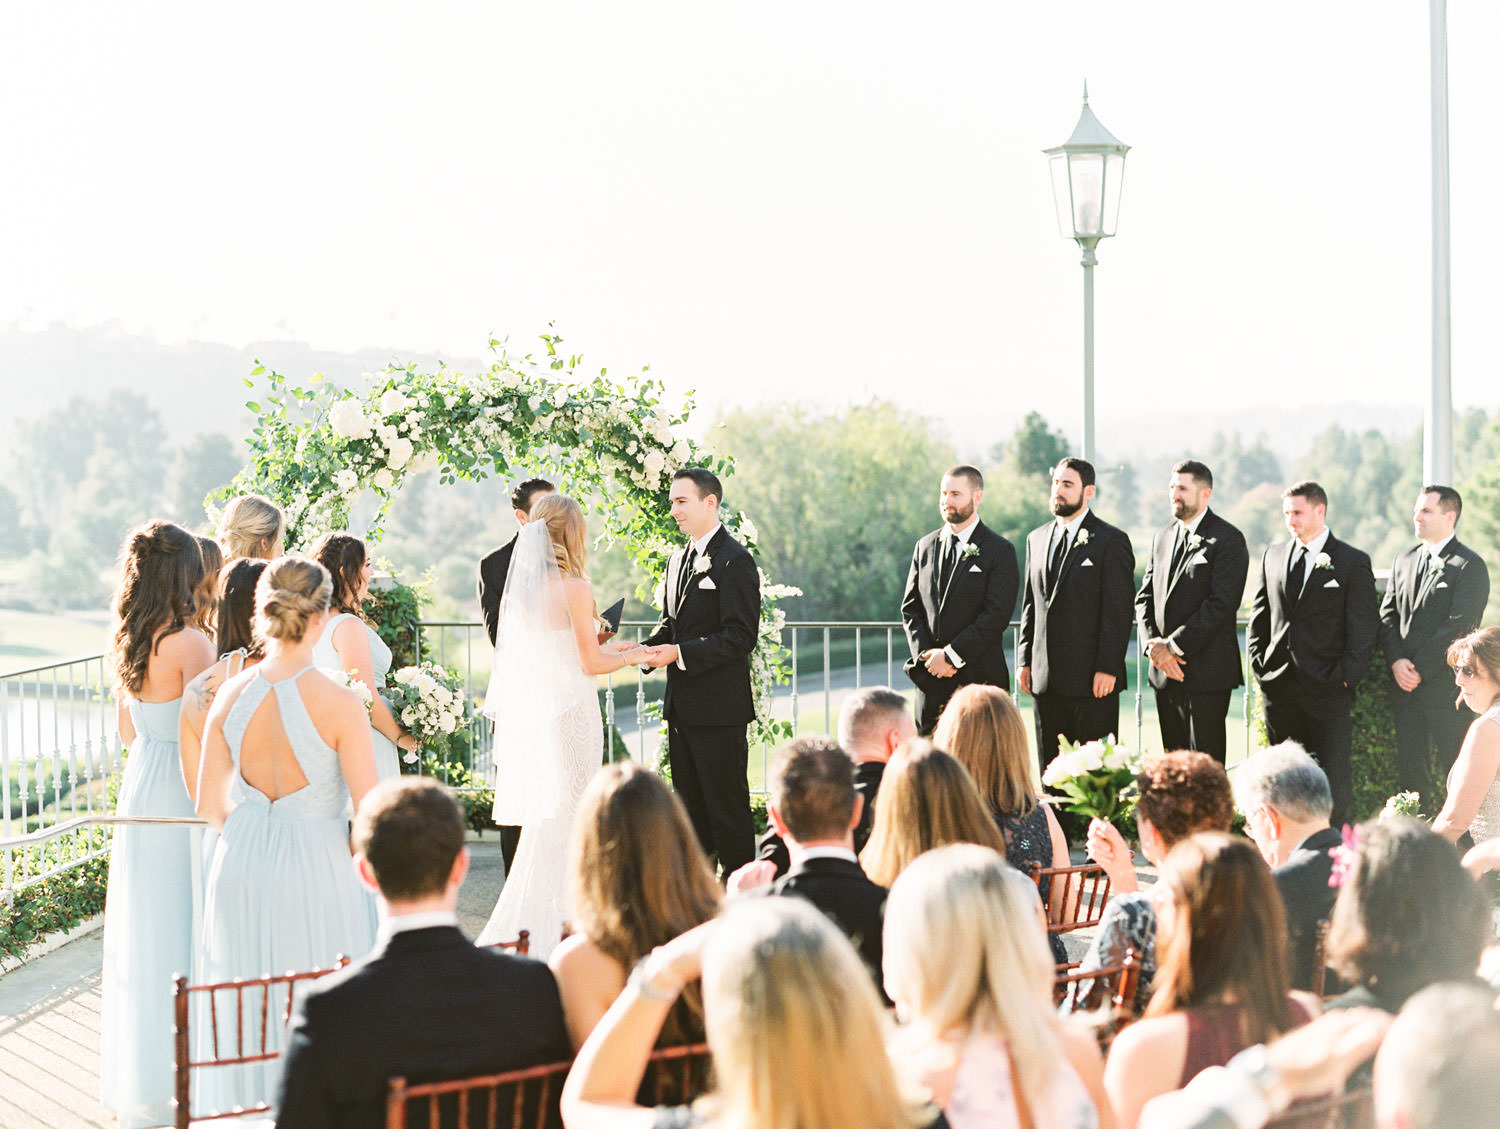 Film photo of ceremony on an outdoor patio with brown chiavari chairs and white cushions leading up to a semicircle arch covered in greenery and ivory flowers. Luxury wedding ceremony arch by Compass Floral, Del Mar Country Club Wedding by Cavin Elizabeth Photography